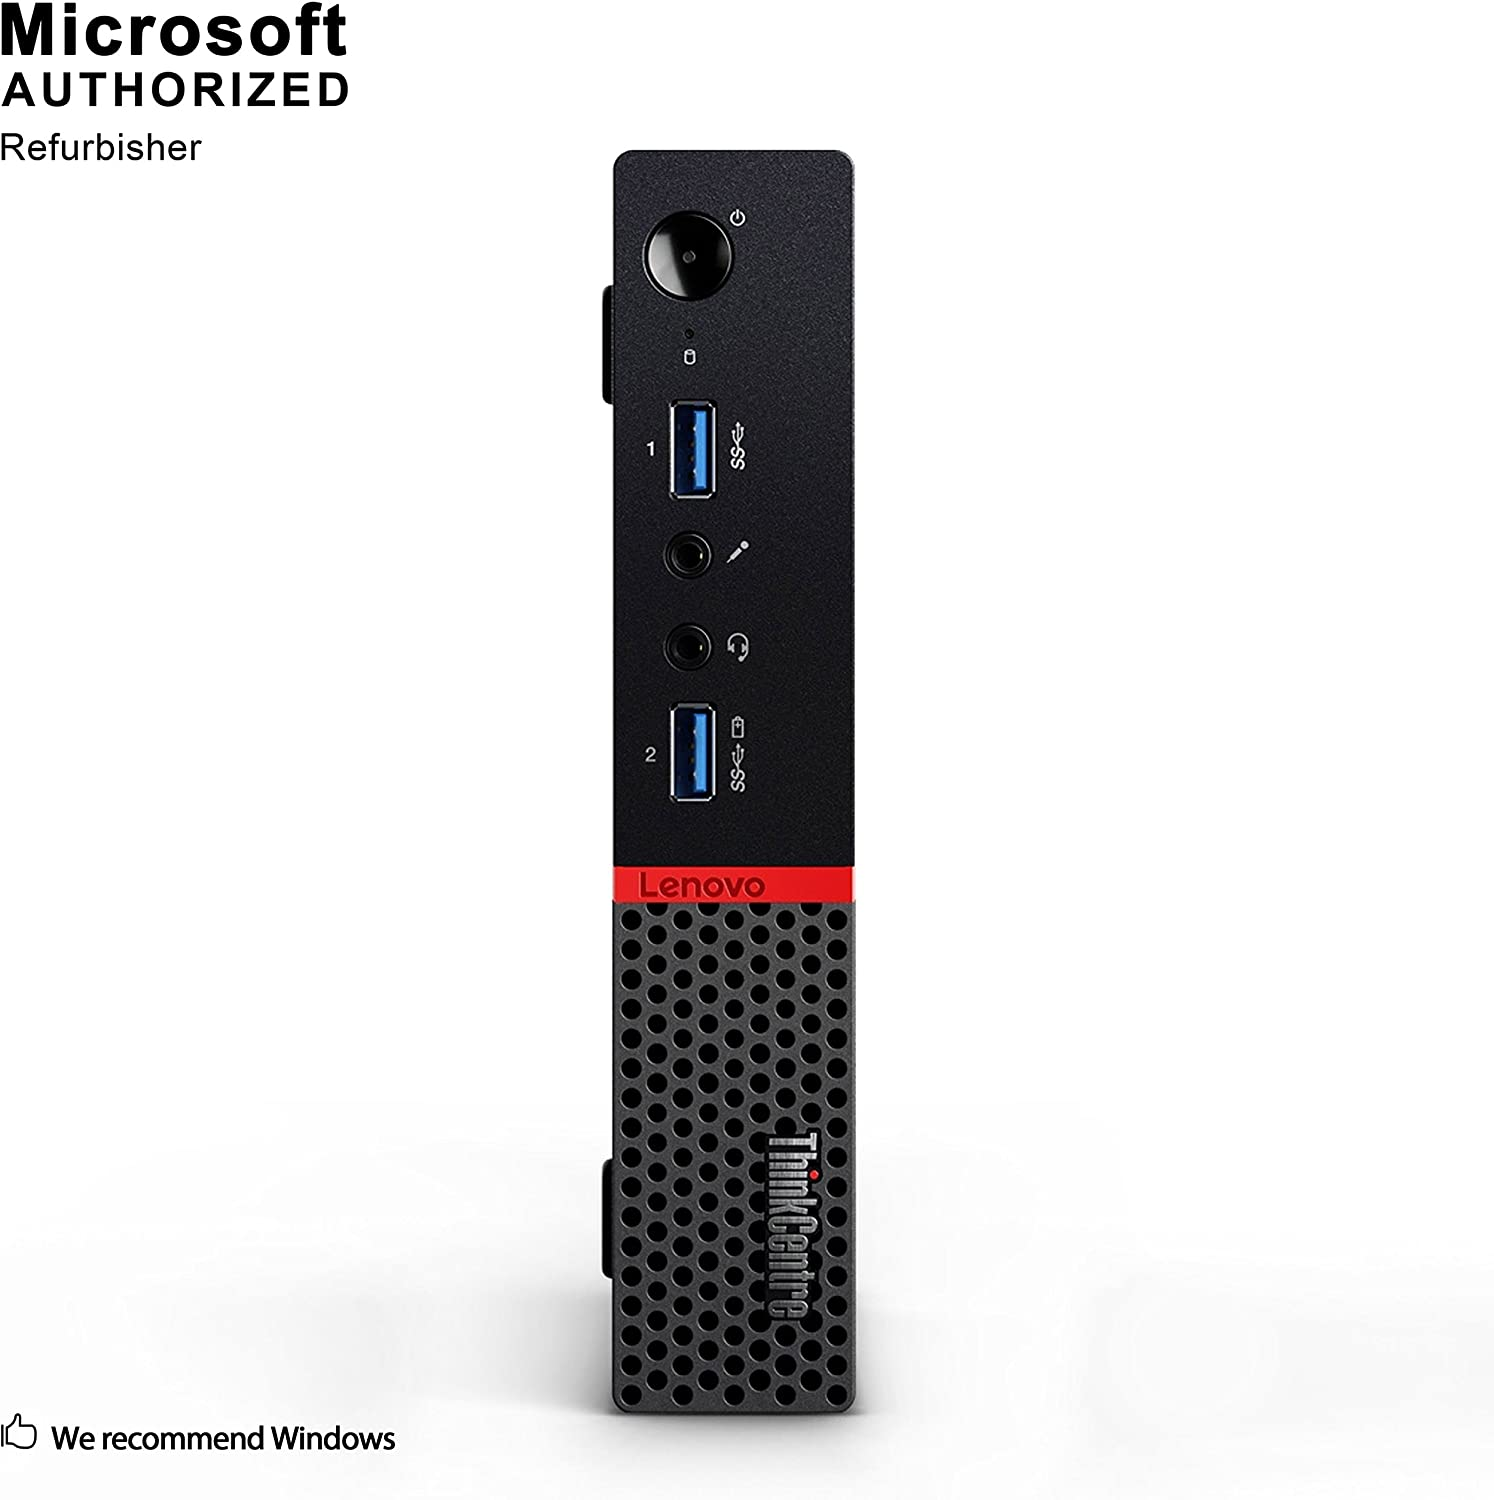 Lenovo ThinkCentre M700 Tiny Business Desktop PC, Intel Quad Core i7-6700T up to 3.6GHz, 16G DDR4, 1T, WiFi, Bluetooth 4.0, Windows 10 64-Multi-Language Support English/Spanish/French (Renewed)